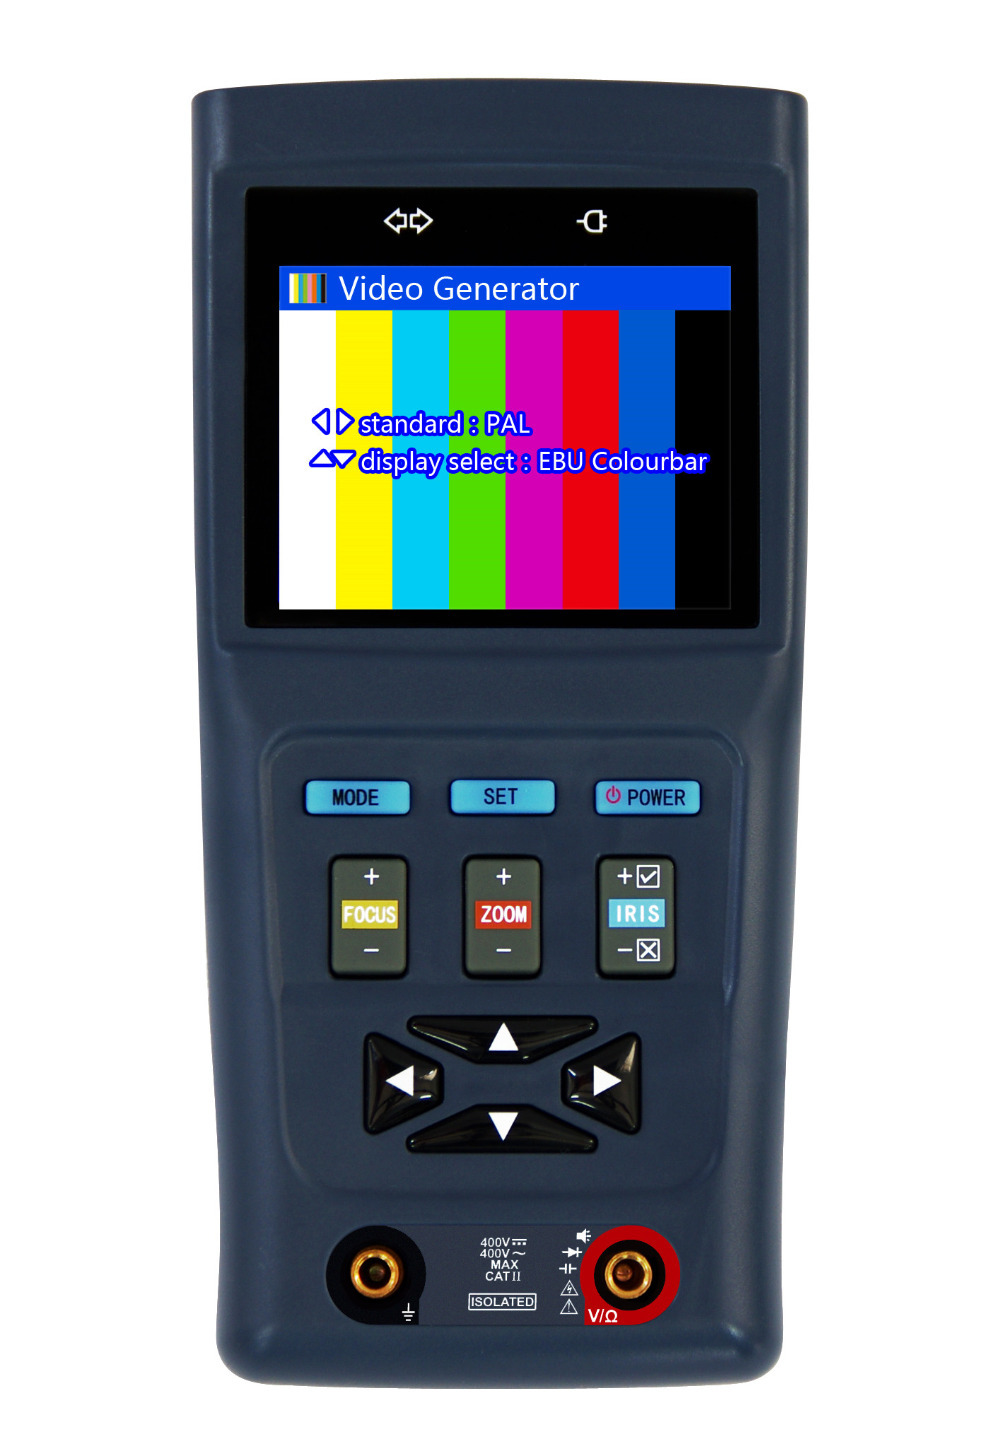 Lower Pirce New 2.8 inch NEW TVI Tester CCTV Test Monitor for 720P 1080P Camera with Multi-meter Funciton &12V1A Power Output(China (Mainland))